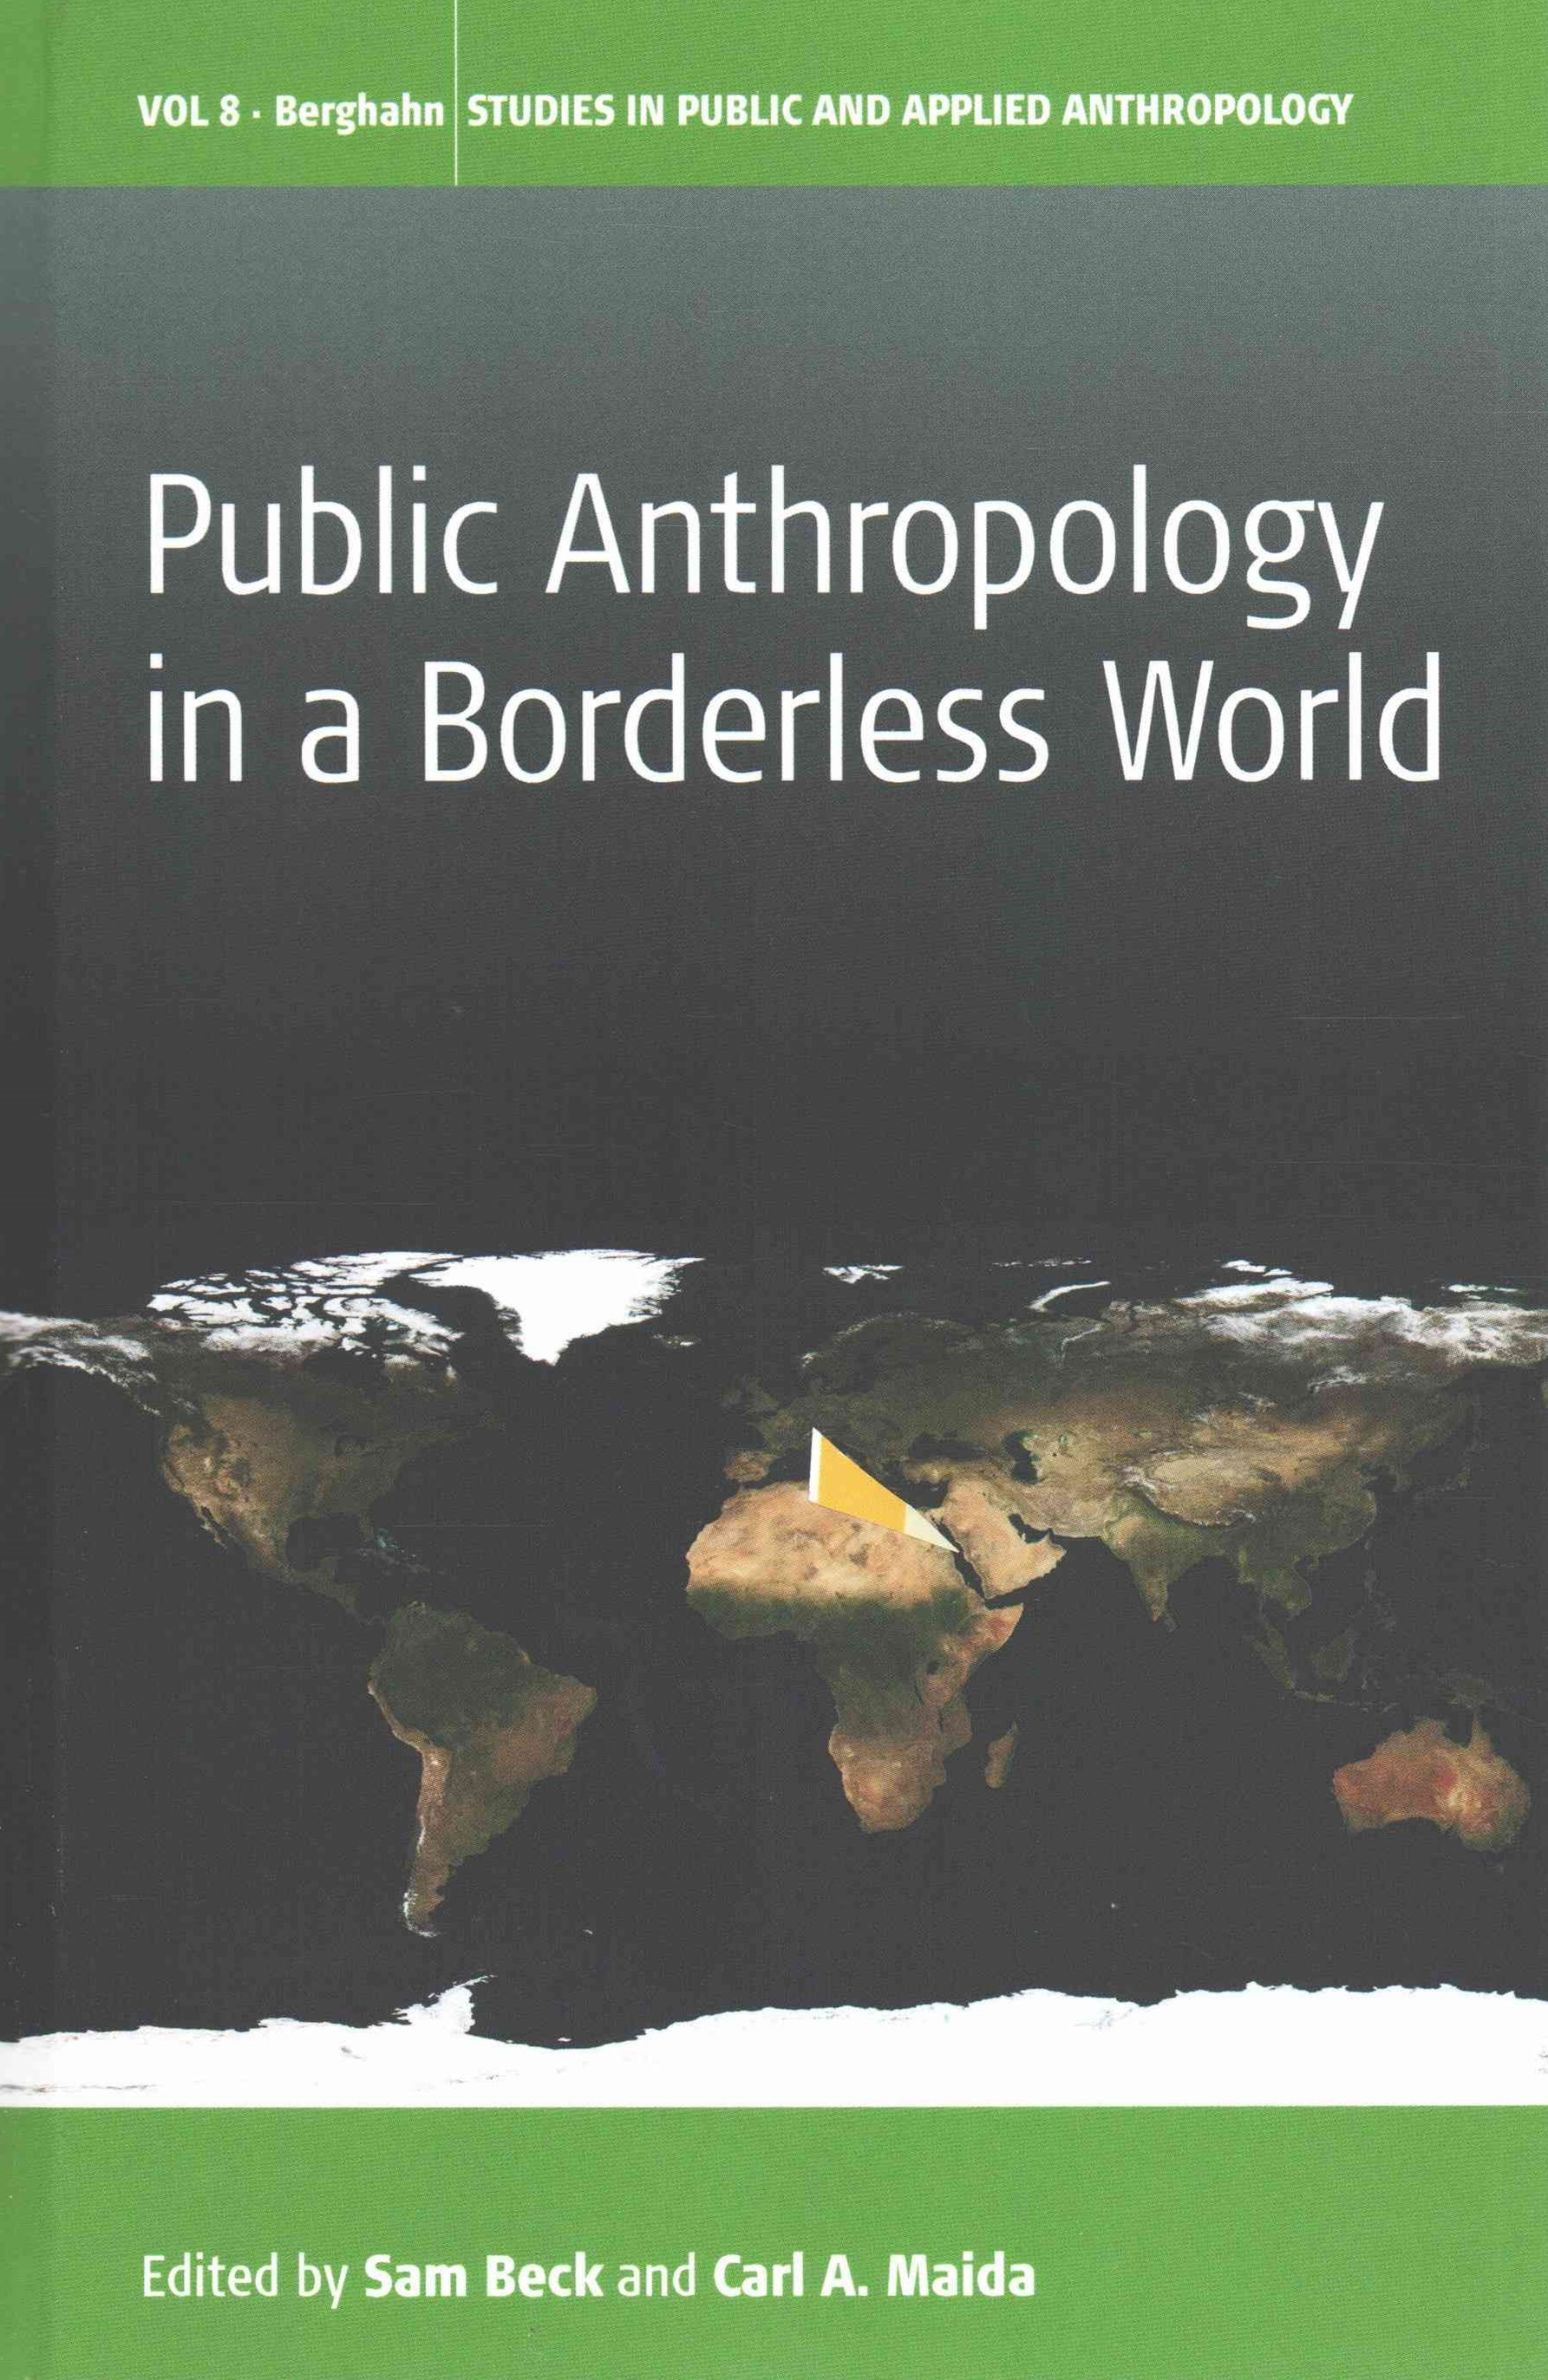 Public Anthropology in a Borderless World